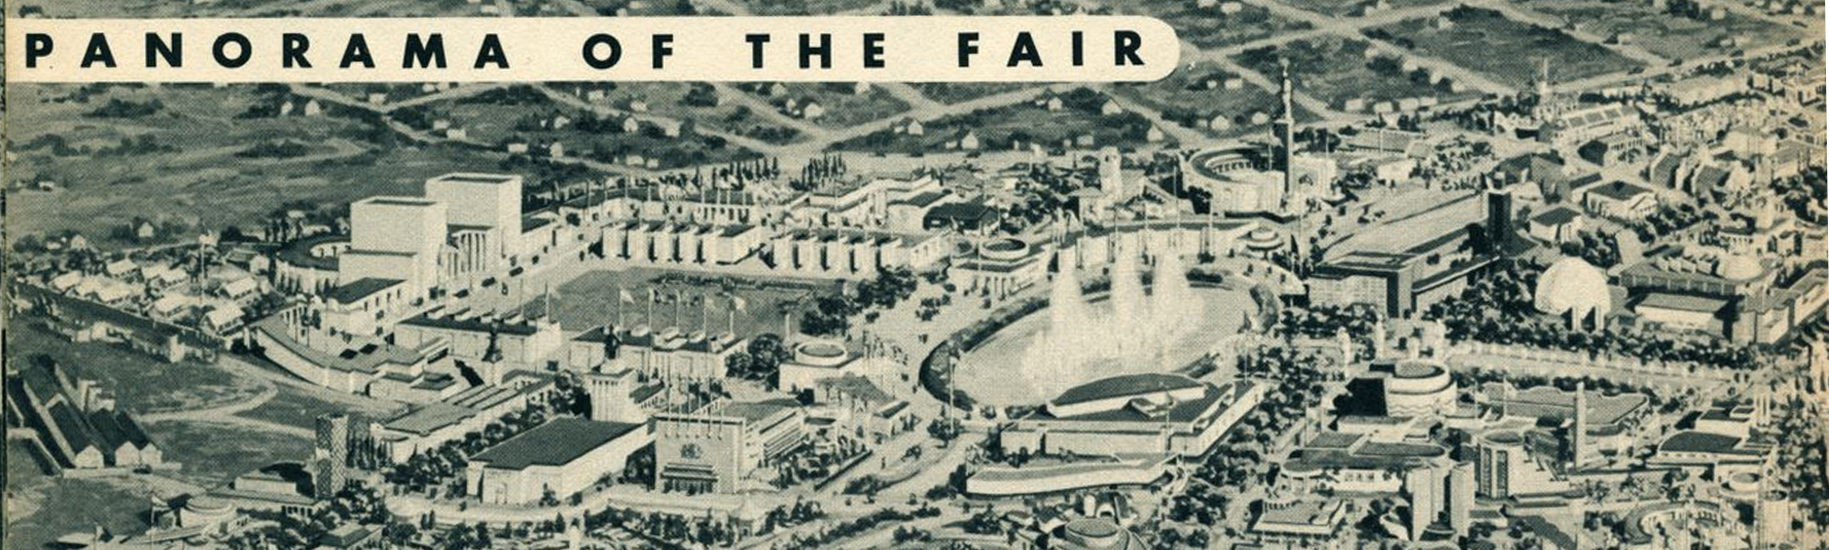 Aerial view of the 1939 World's Fair